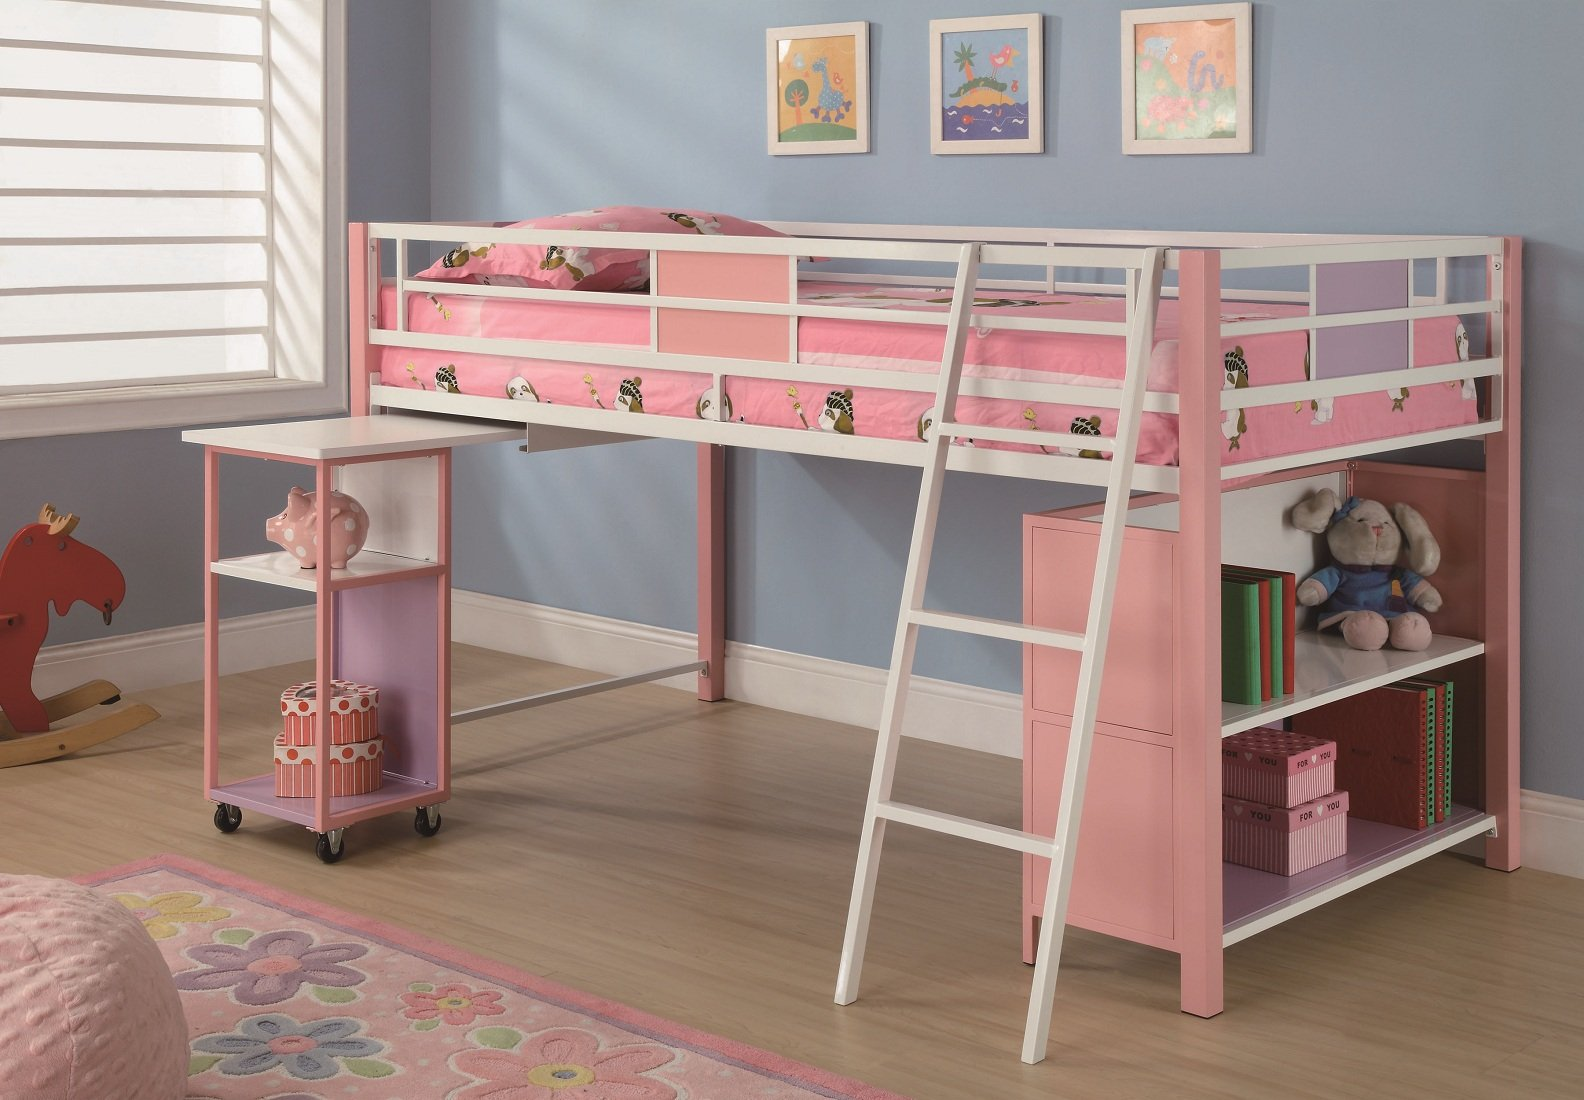 Bunk Beds for Small Rooms | Bunk Beds for Small Rooms | Built in Bunk Beds for Small Rooms